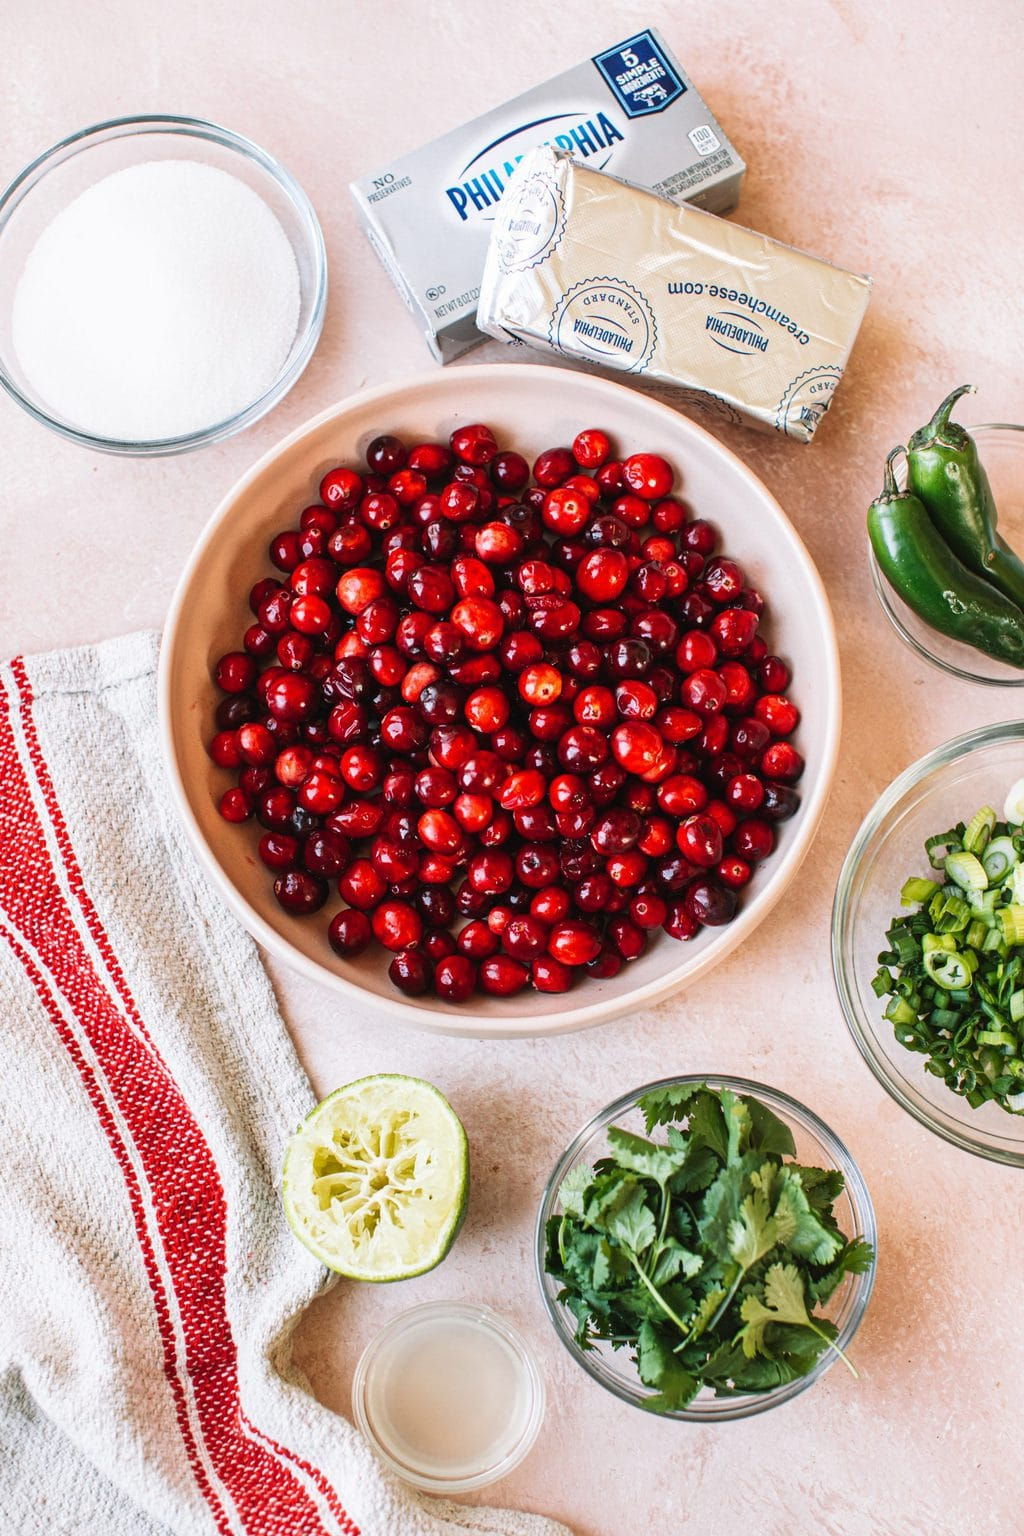 Ingredients top shot, bowl of red cranberries, small bowls of cilantro, jalapeños, chopped onion, and sugar, and two blocks of Philadelphia cream cheese